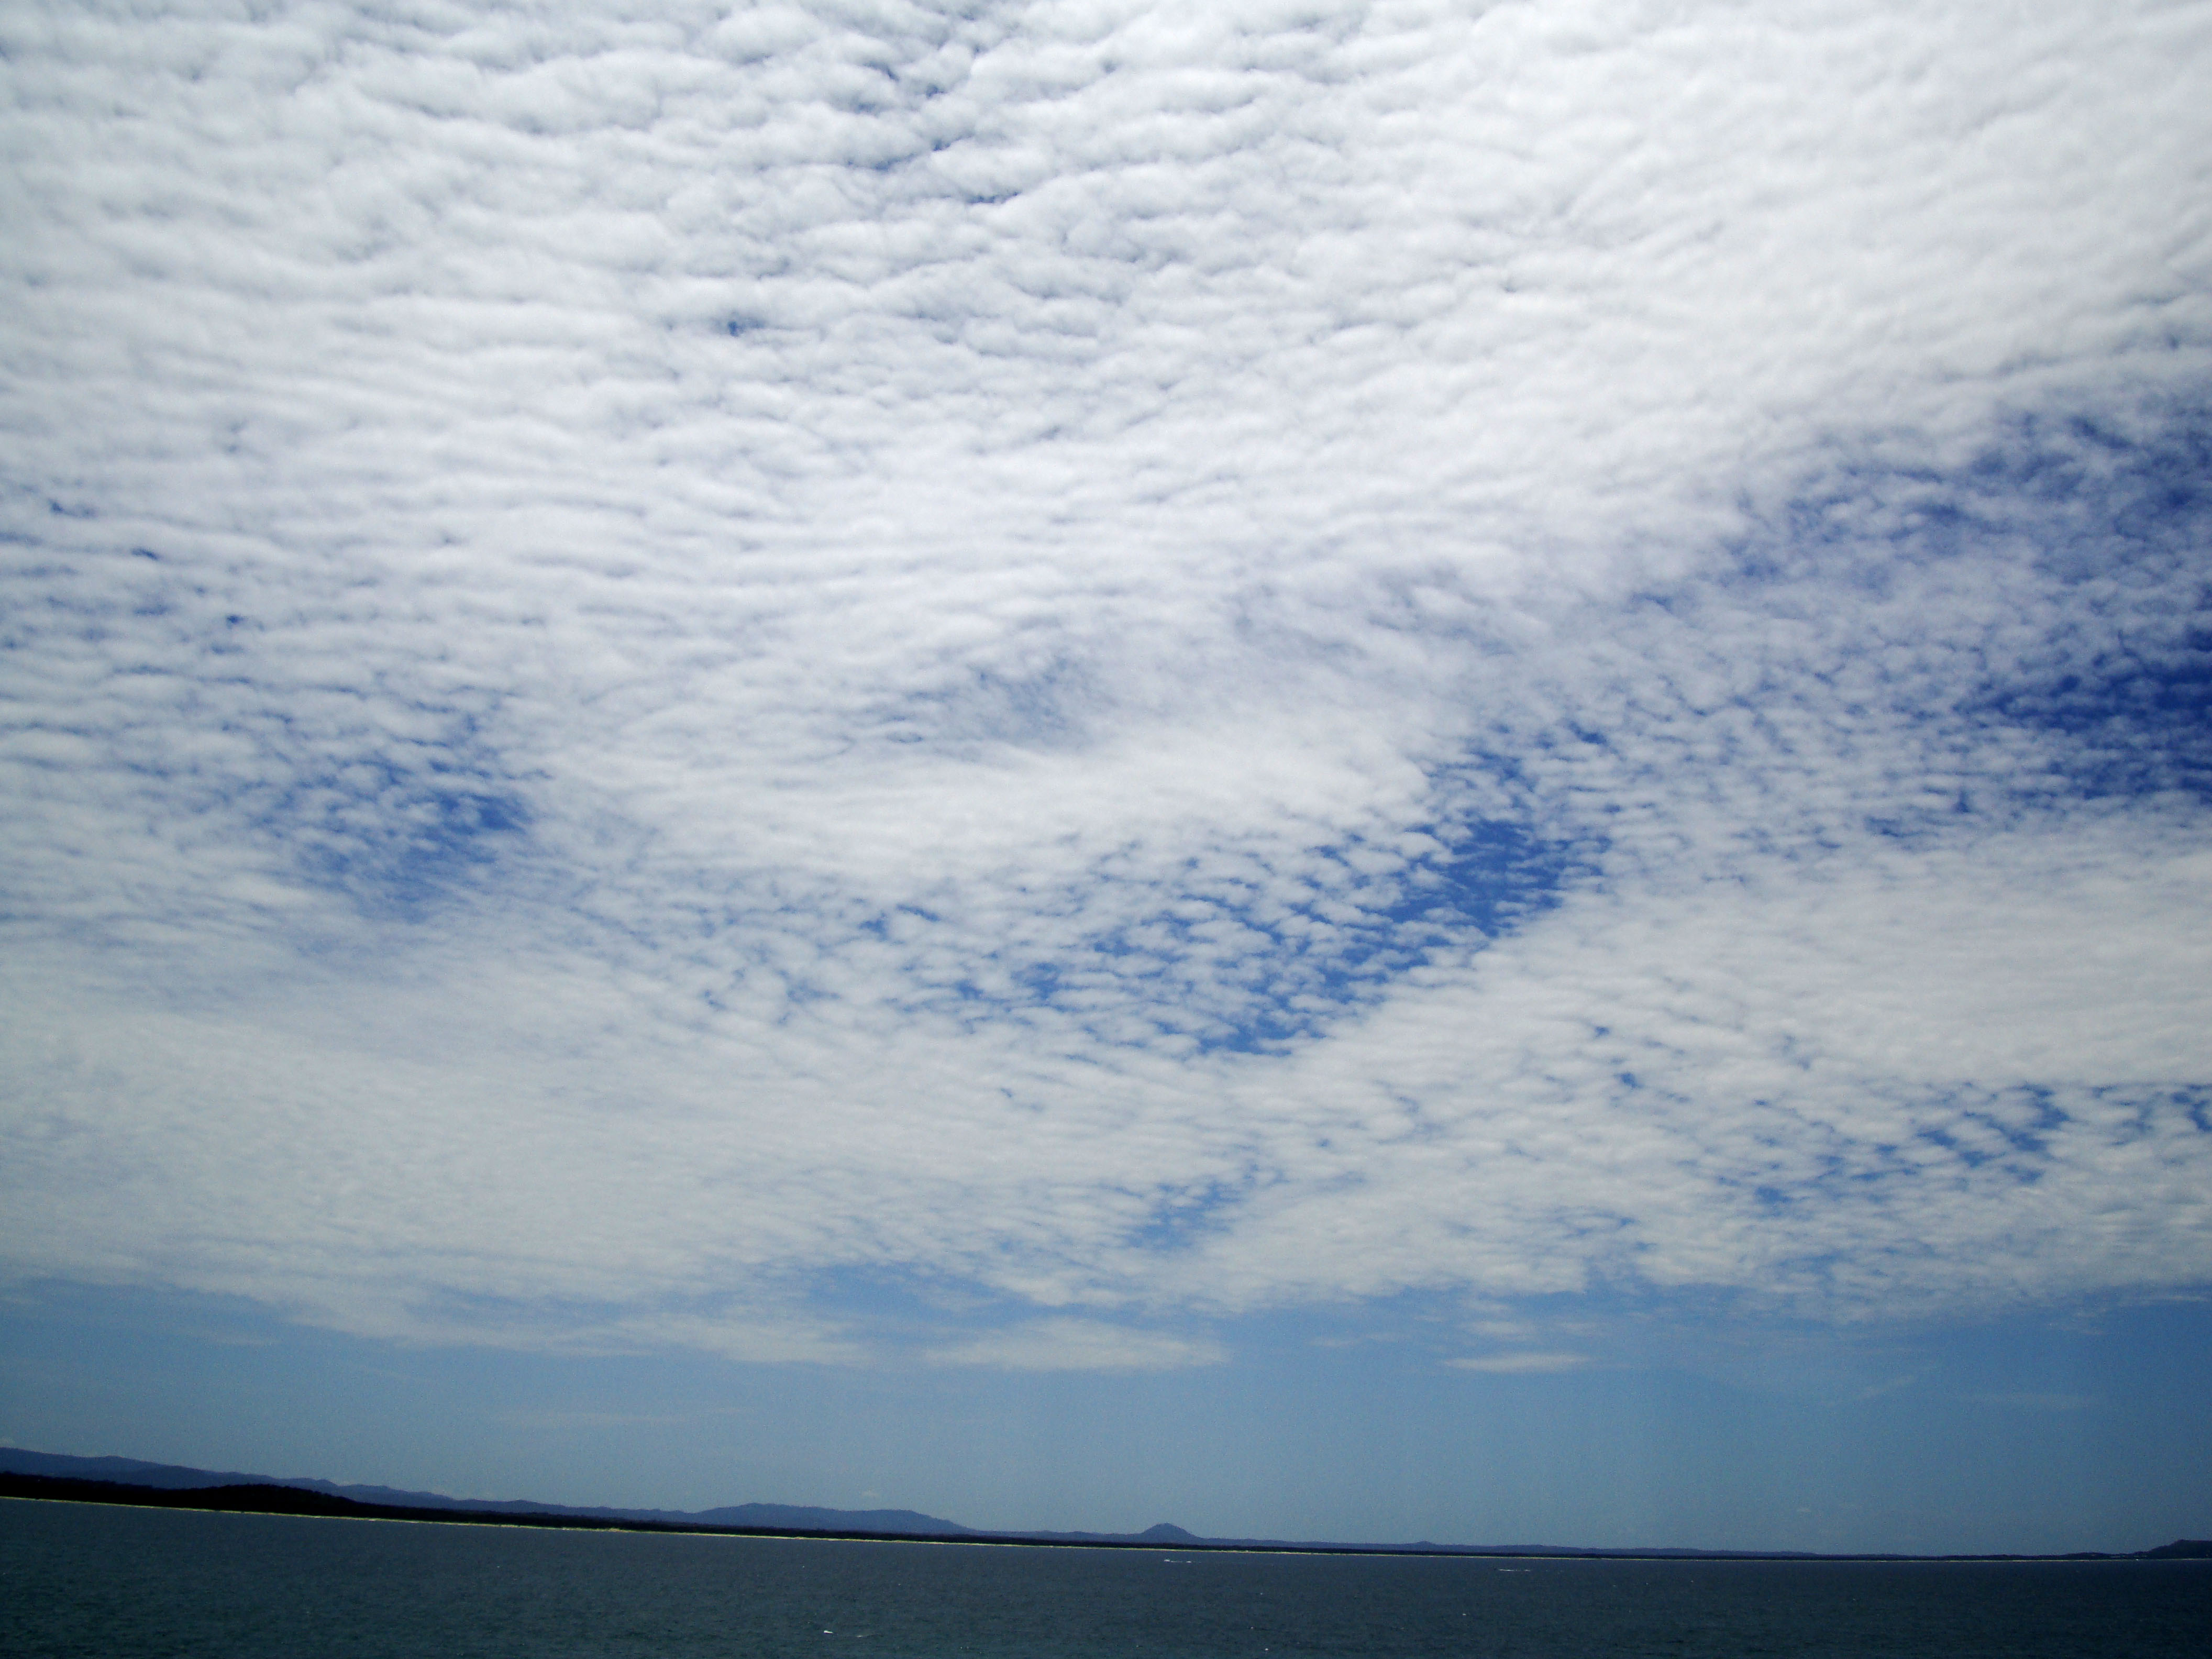 Cirrocumulus Clouds Formations Sky Storms Weather Phenomena 01